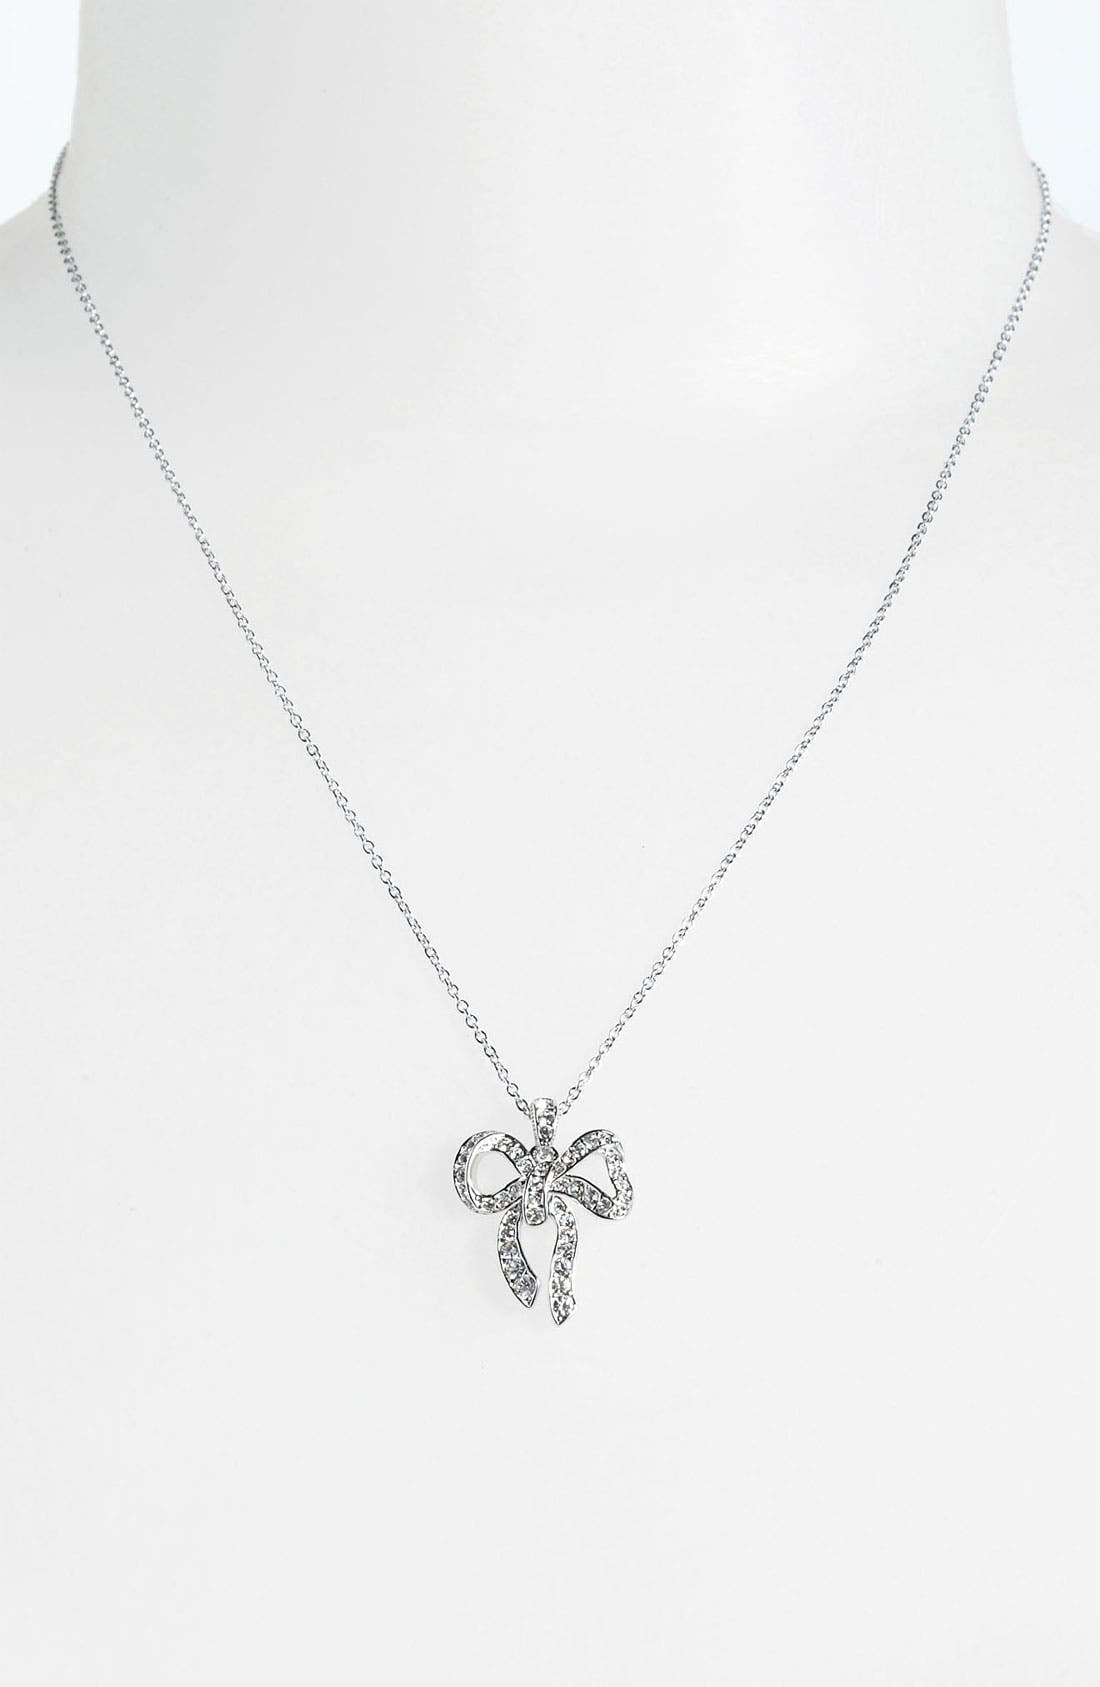 Alternate Image 1 Selected - Nadri Boxed Bow Pendant Necklace (Nordstrom Exclusive)